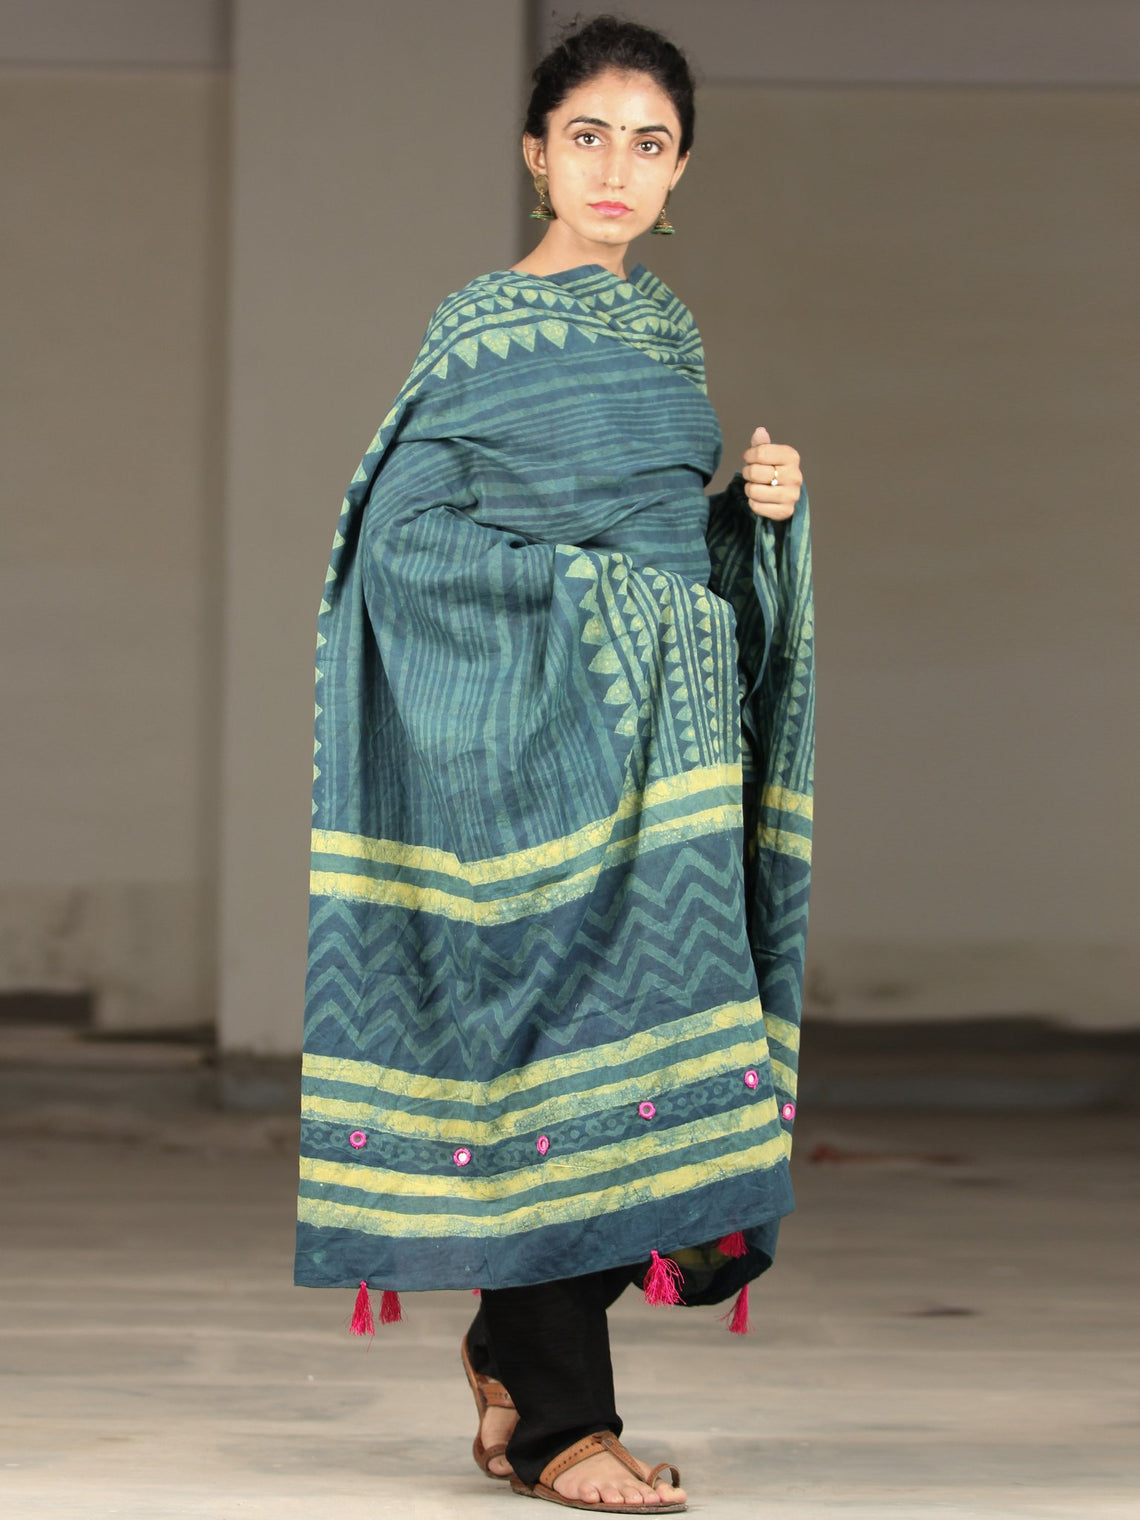 Deep Indigo Green Cotton Hand Block Printed Dupatta With Mirror Work & Tassels - D04170401